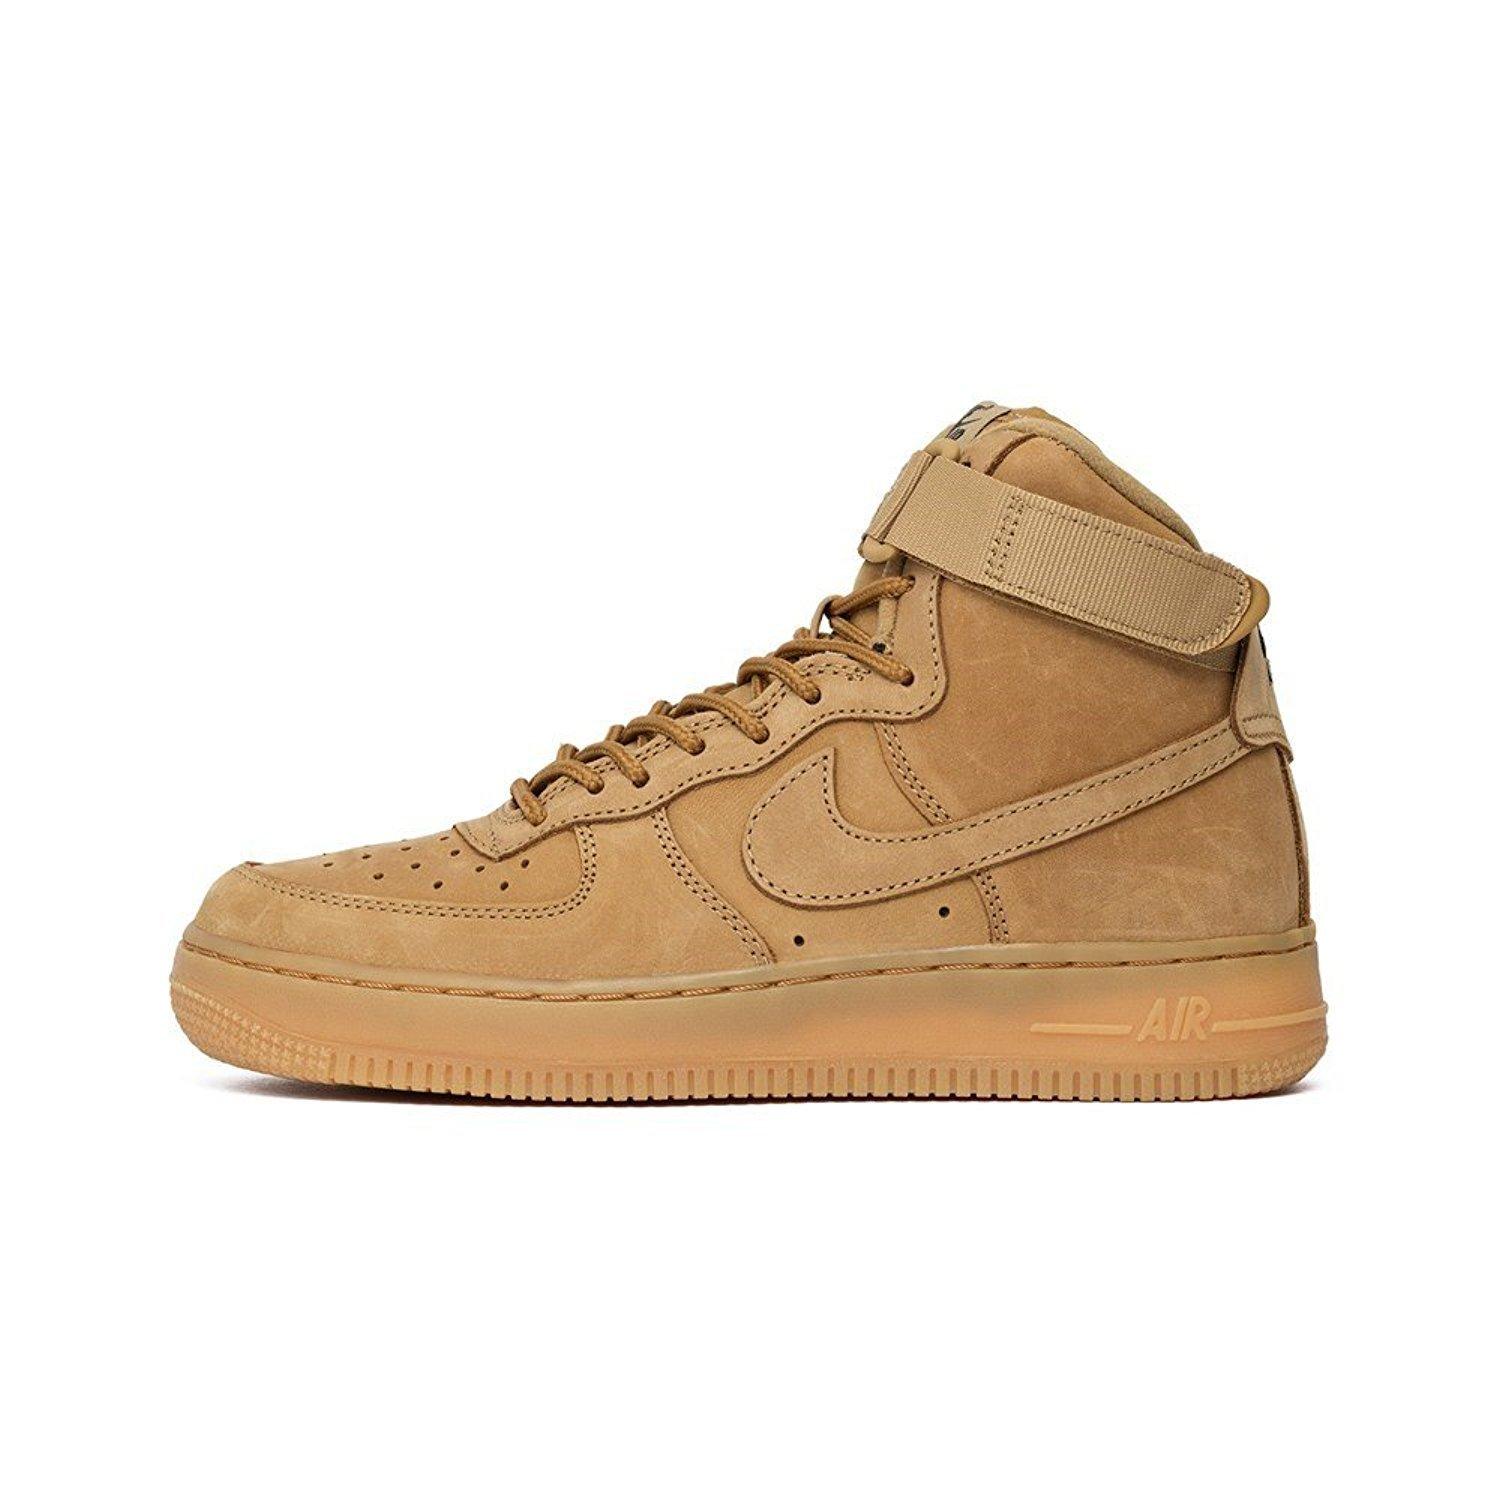 low priced 5aecf 1cea2 Nike Boys  Air Force 1 High LV8 (GS) Basketball Shoes, Marrón (Flax Flax-Outdoor  Green), 4 UK  Amazon.co.uk  Shoes   Bags